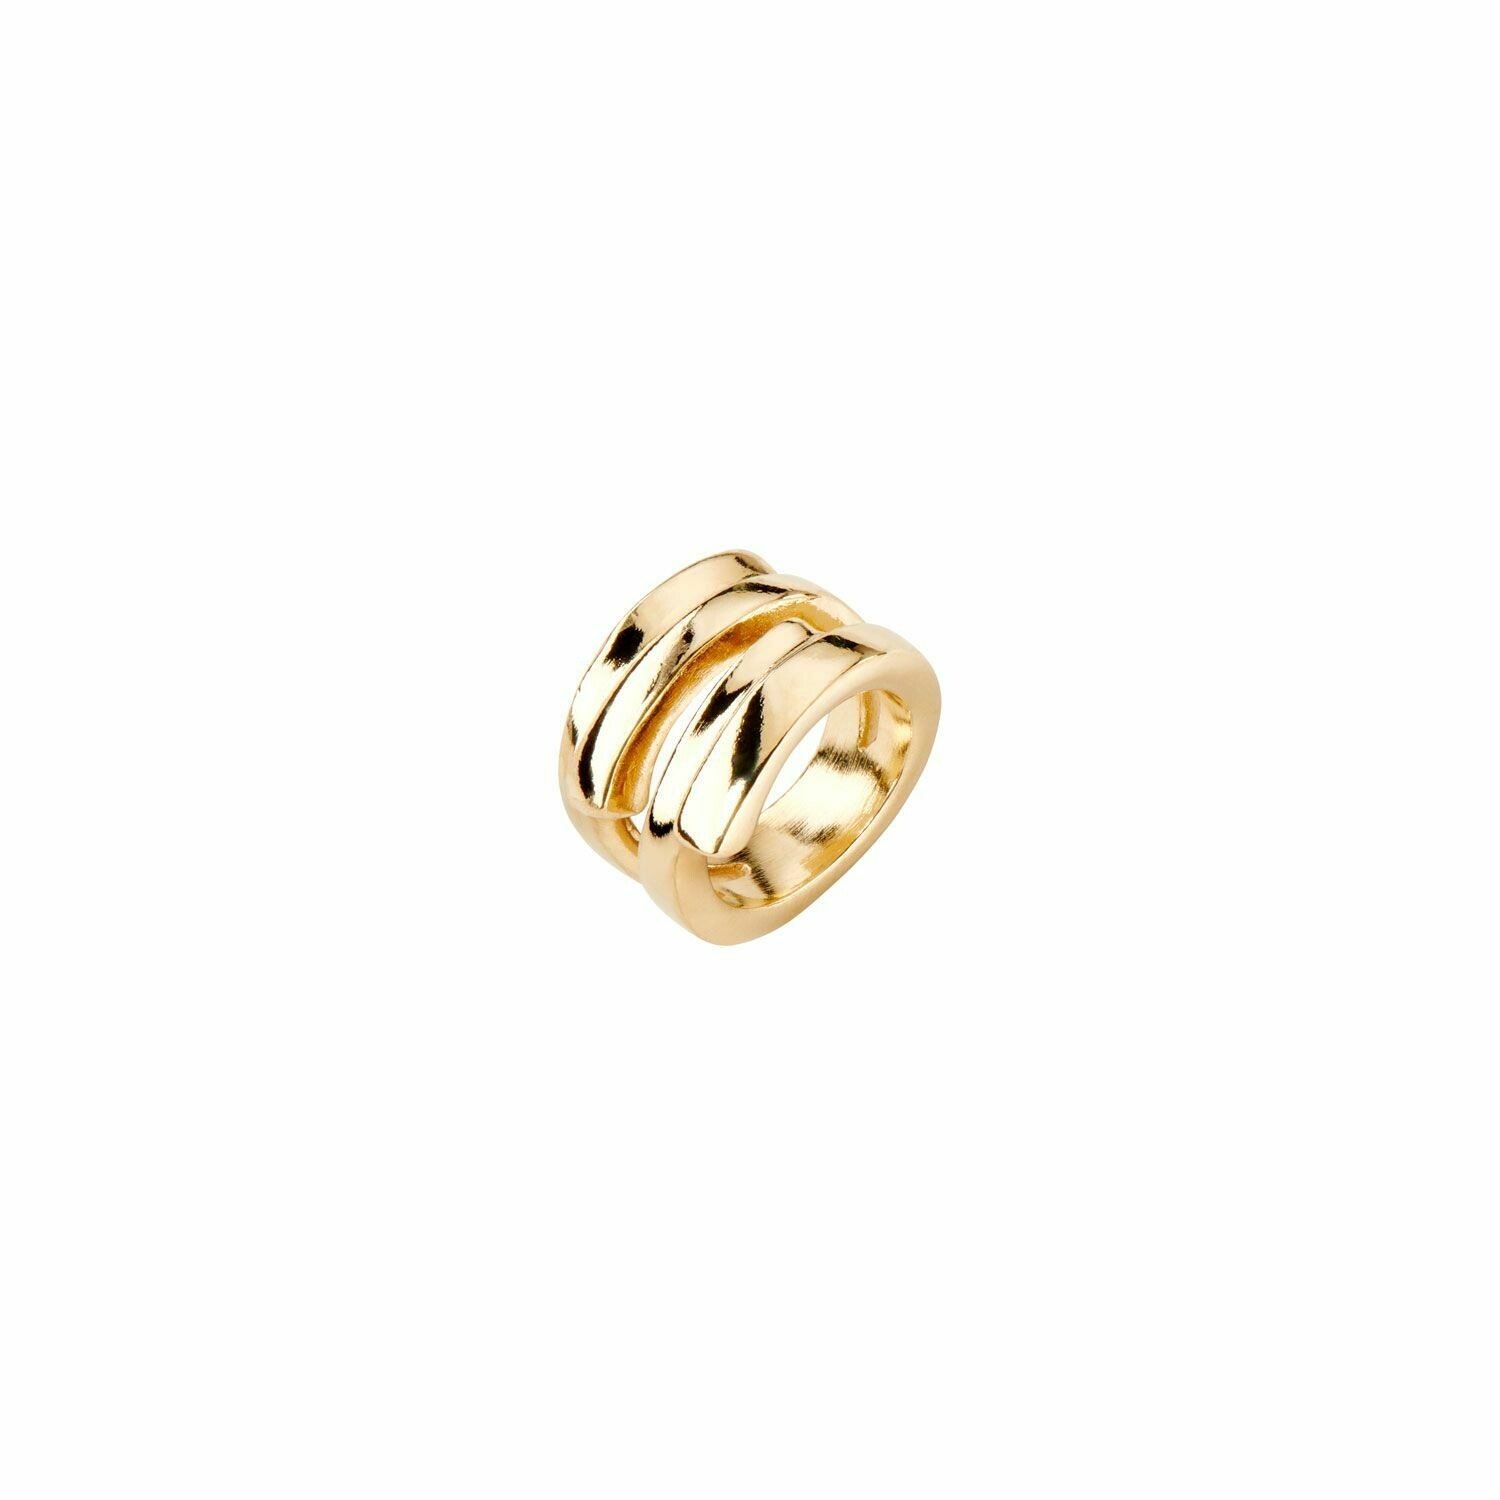 Maratua Island Gold Ring